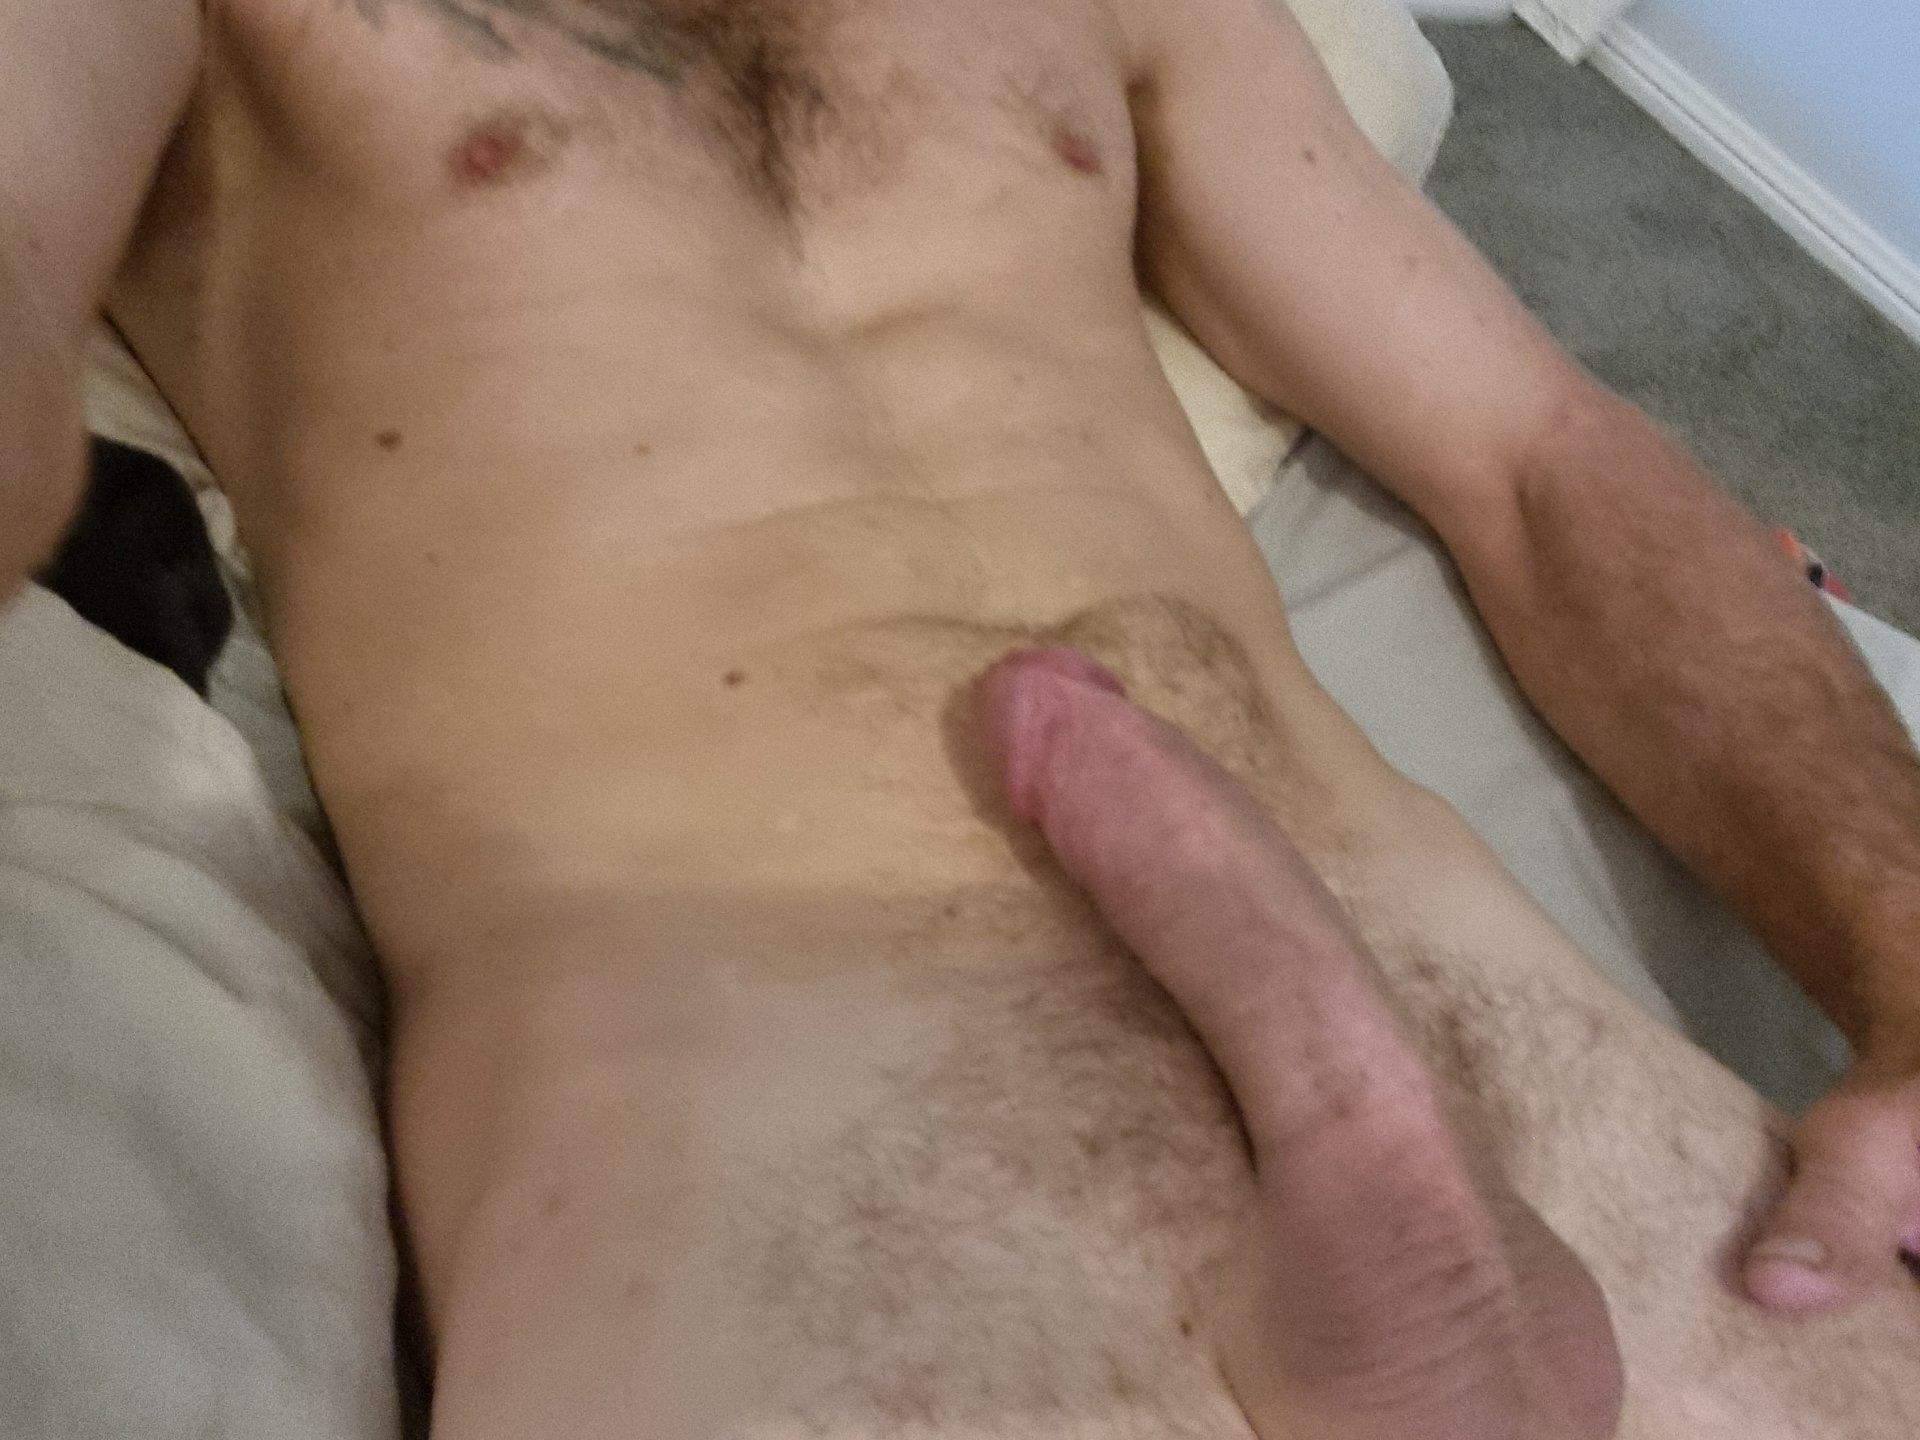 Kyes84 from Queensland,Australia